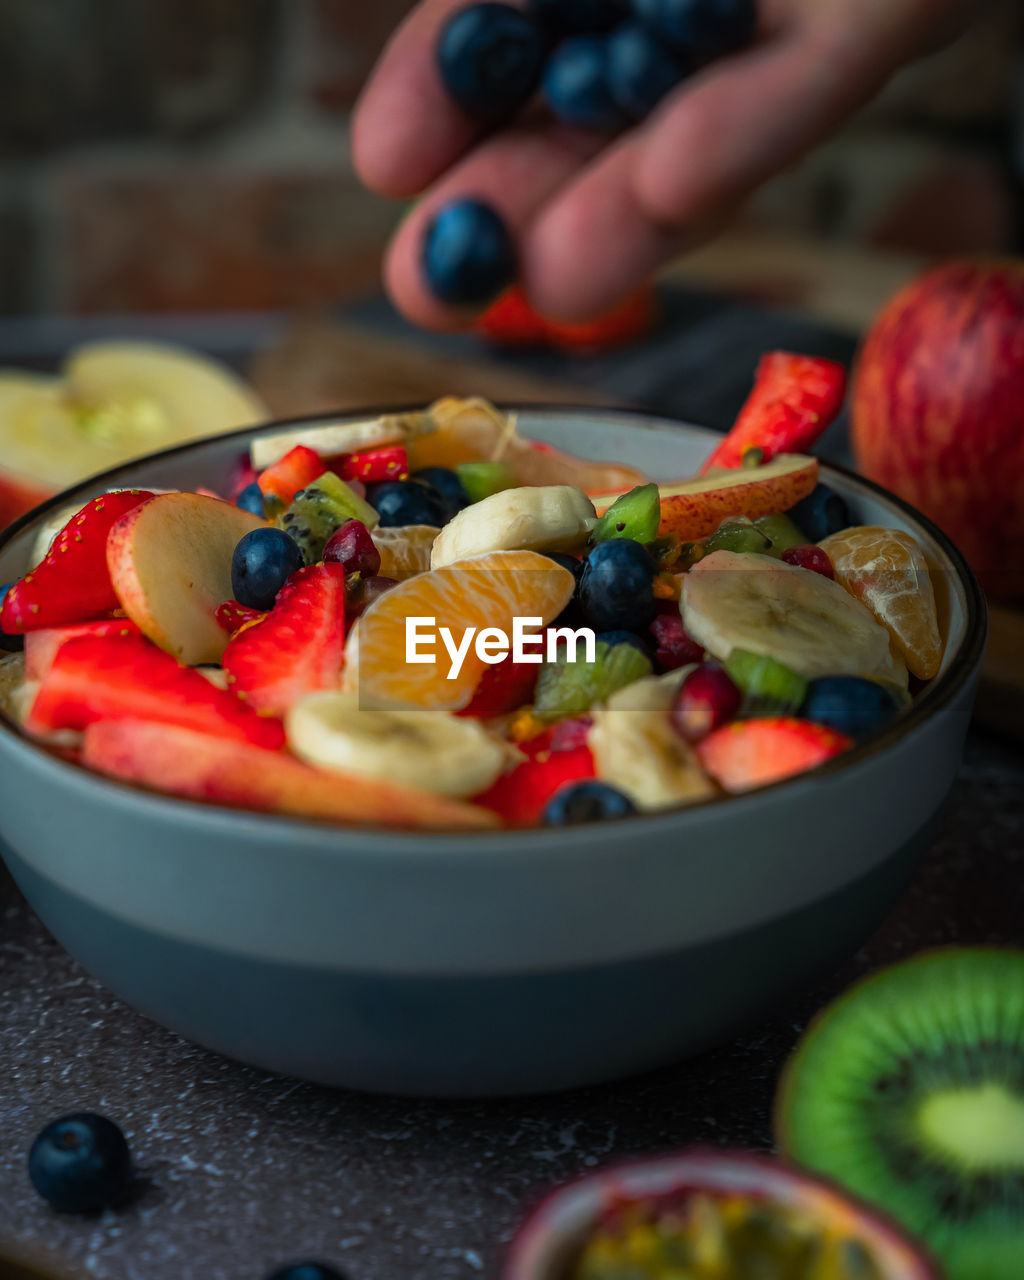 Close-up if hand adding fruit to fruit salad in bowl on table